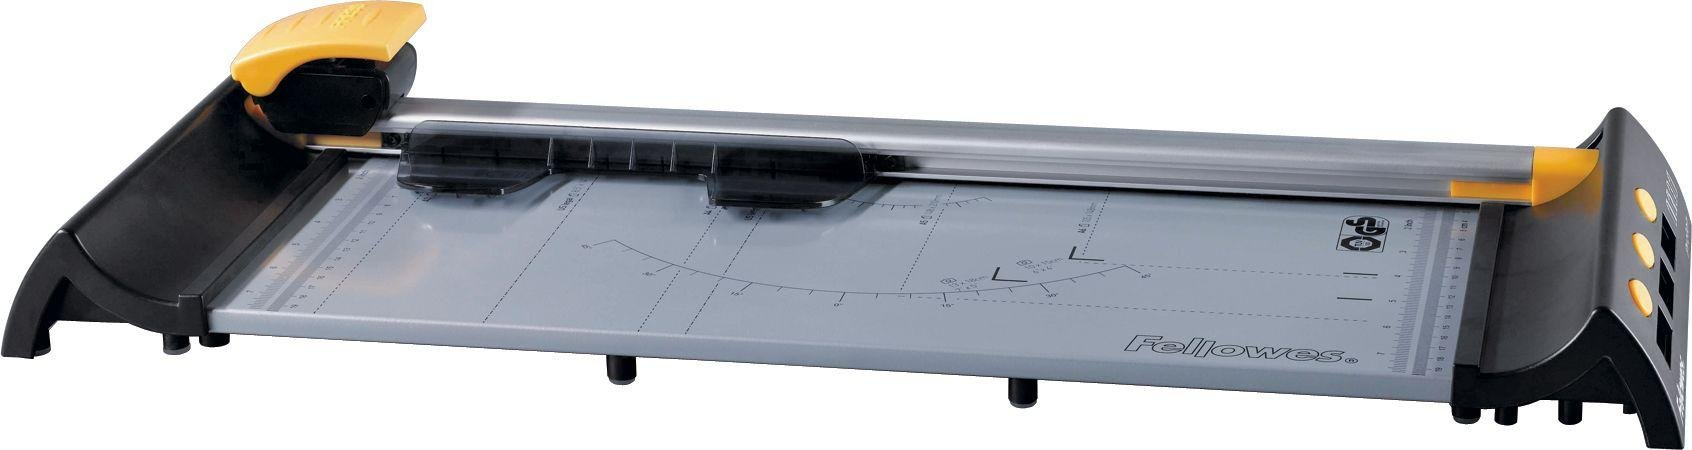 Fellowes Fellowes Lunar A3 Laminator and Trimmer Craft Pack.